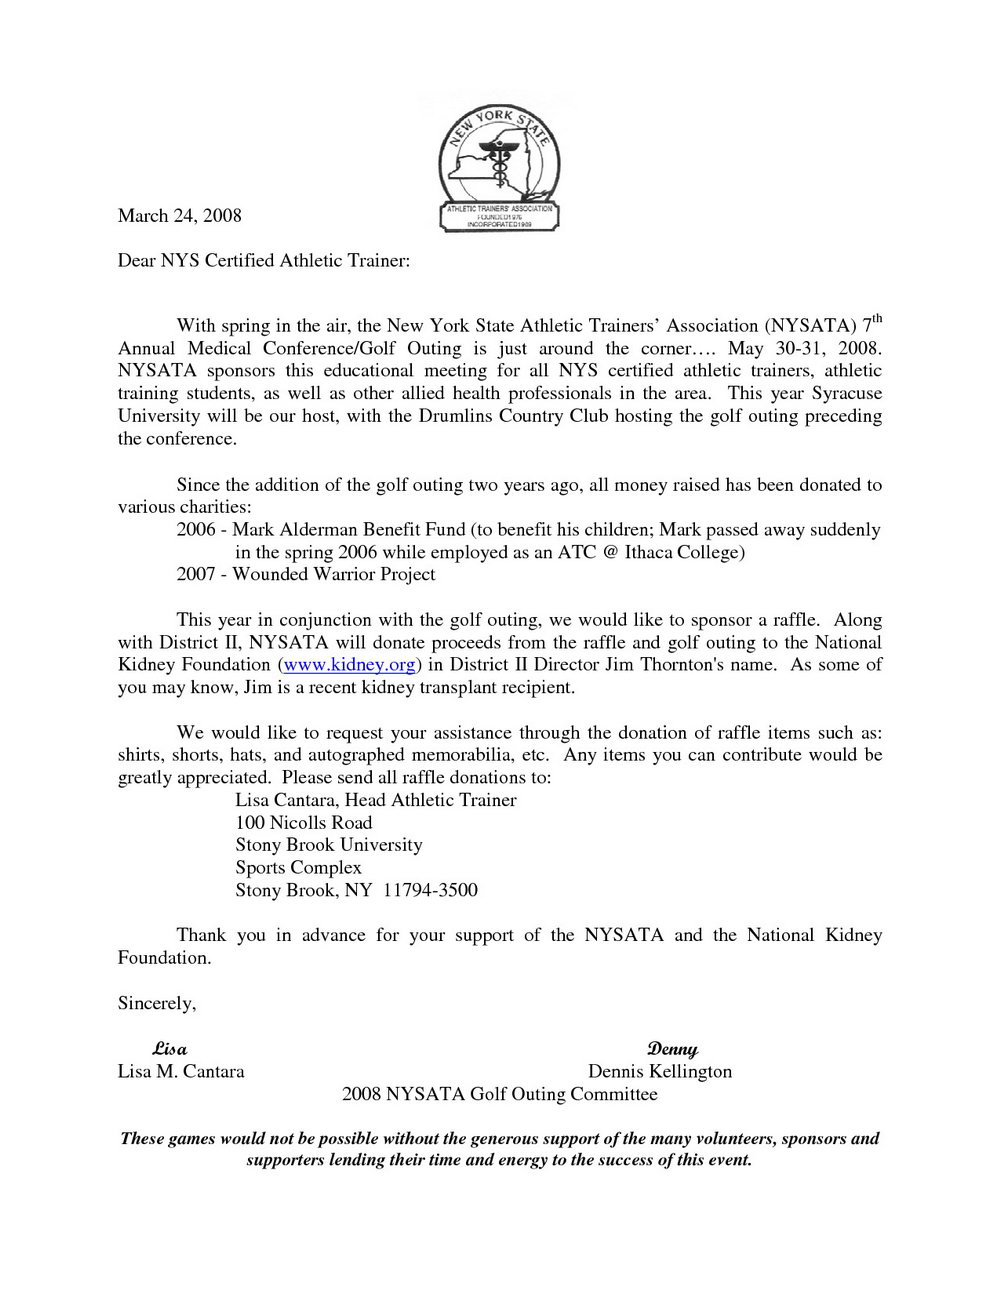 Raffle Donation Request Letter Template